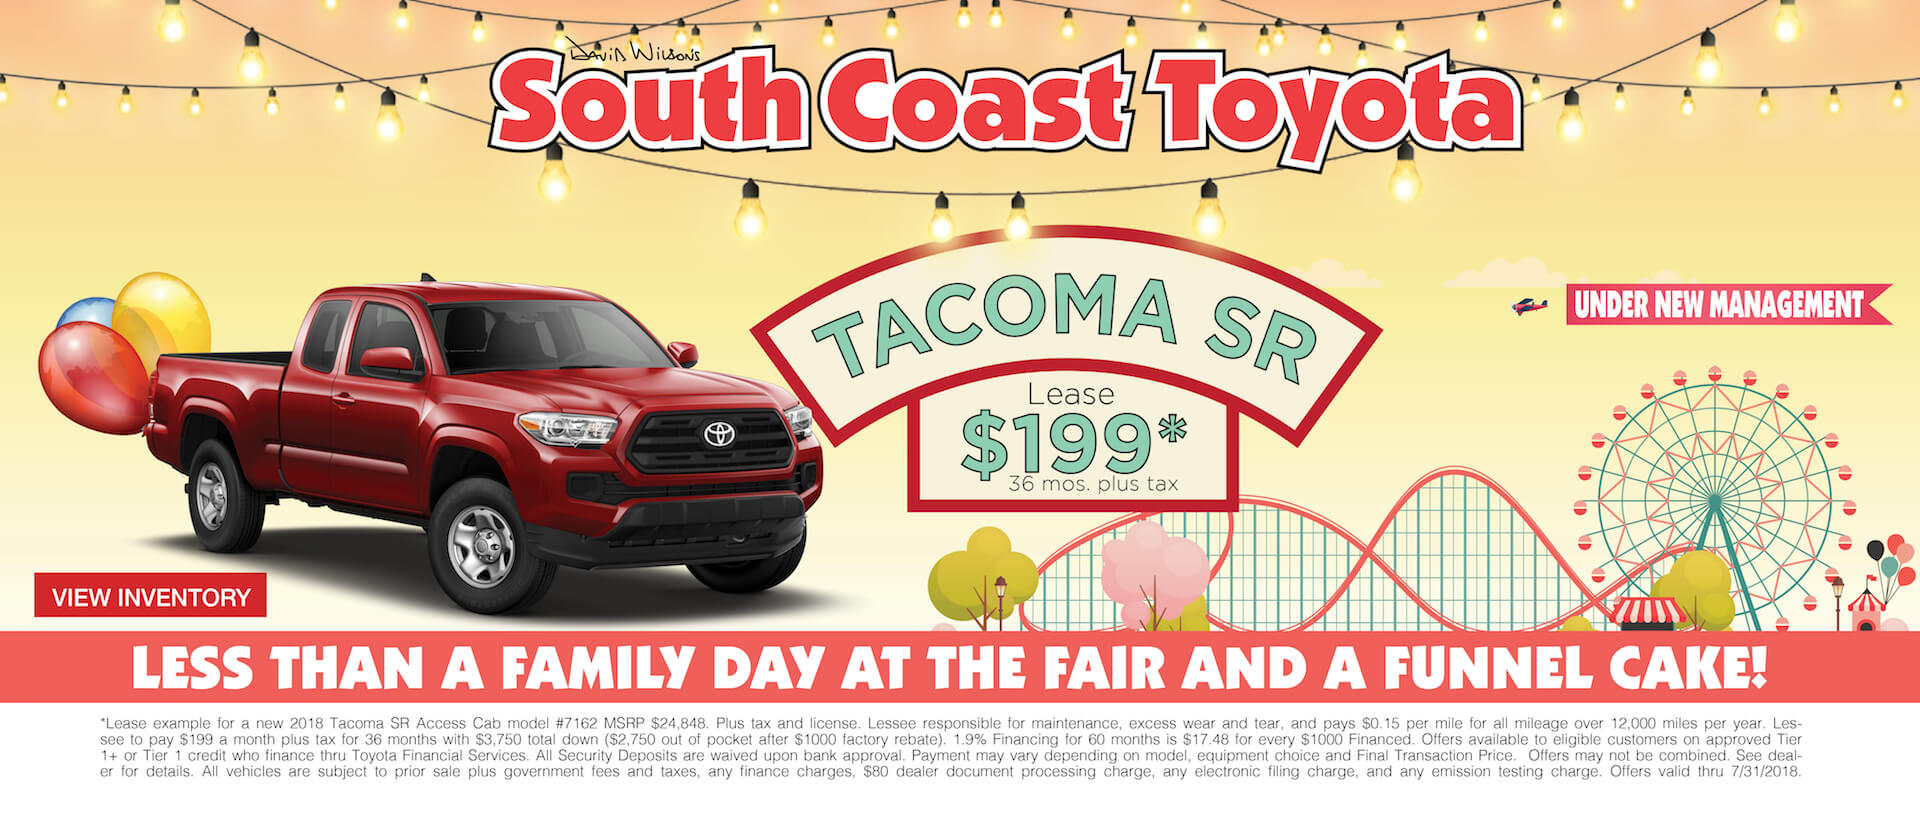 Memorial Day Toyota Tacoma $199 Lease